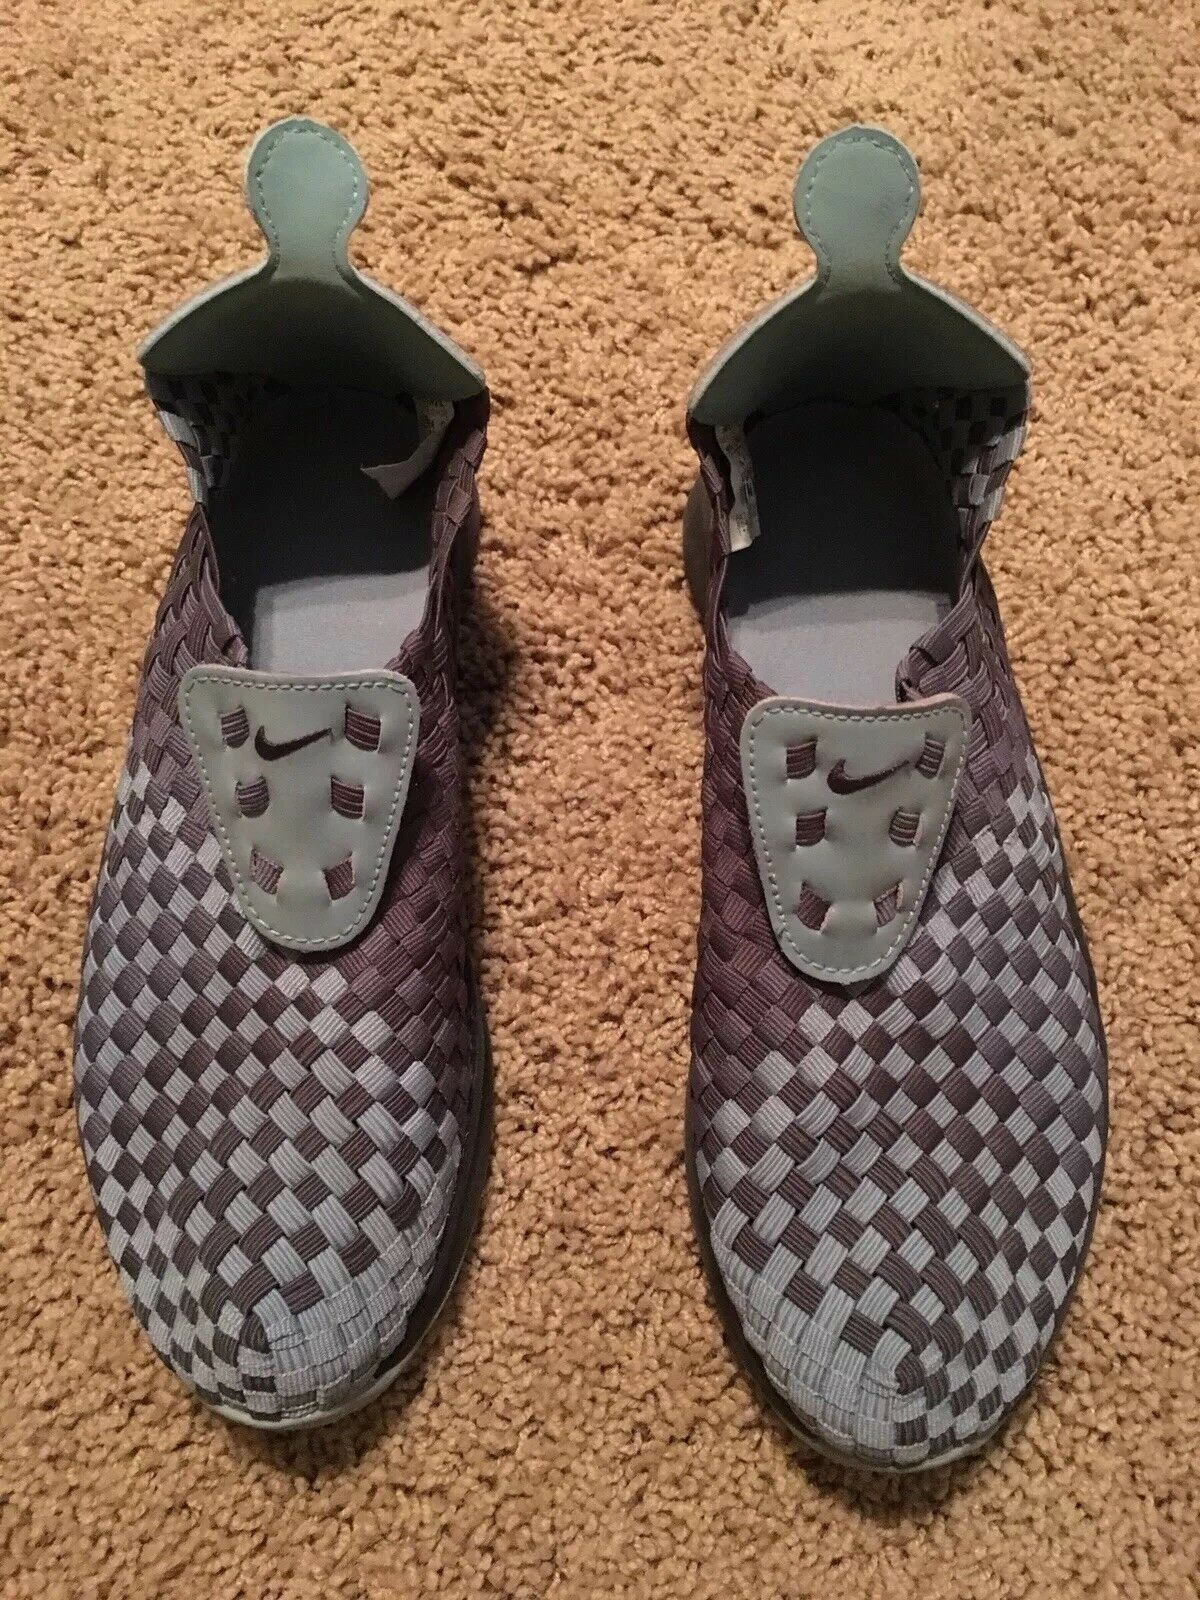 Nike Air Woven Midnight Fog Charcoal Original 609065-002 great condition 5, 6.5 New shoes for men and women, limited time discount